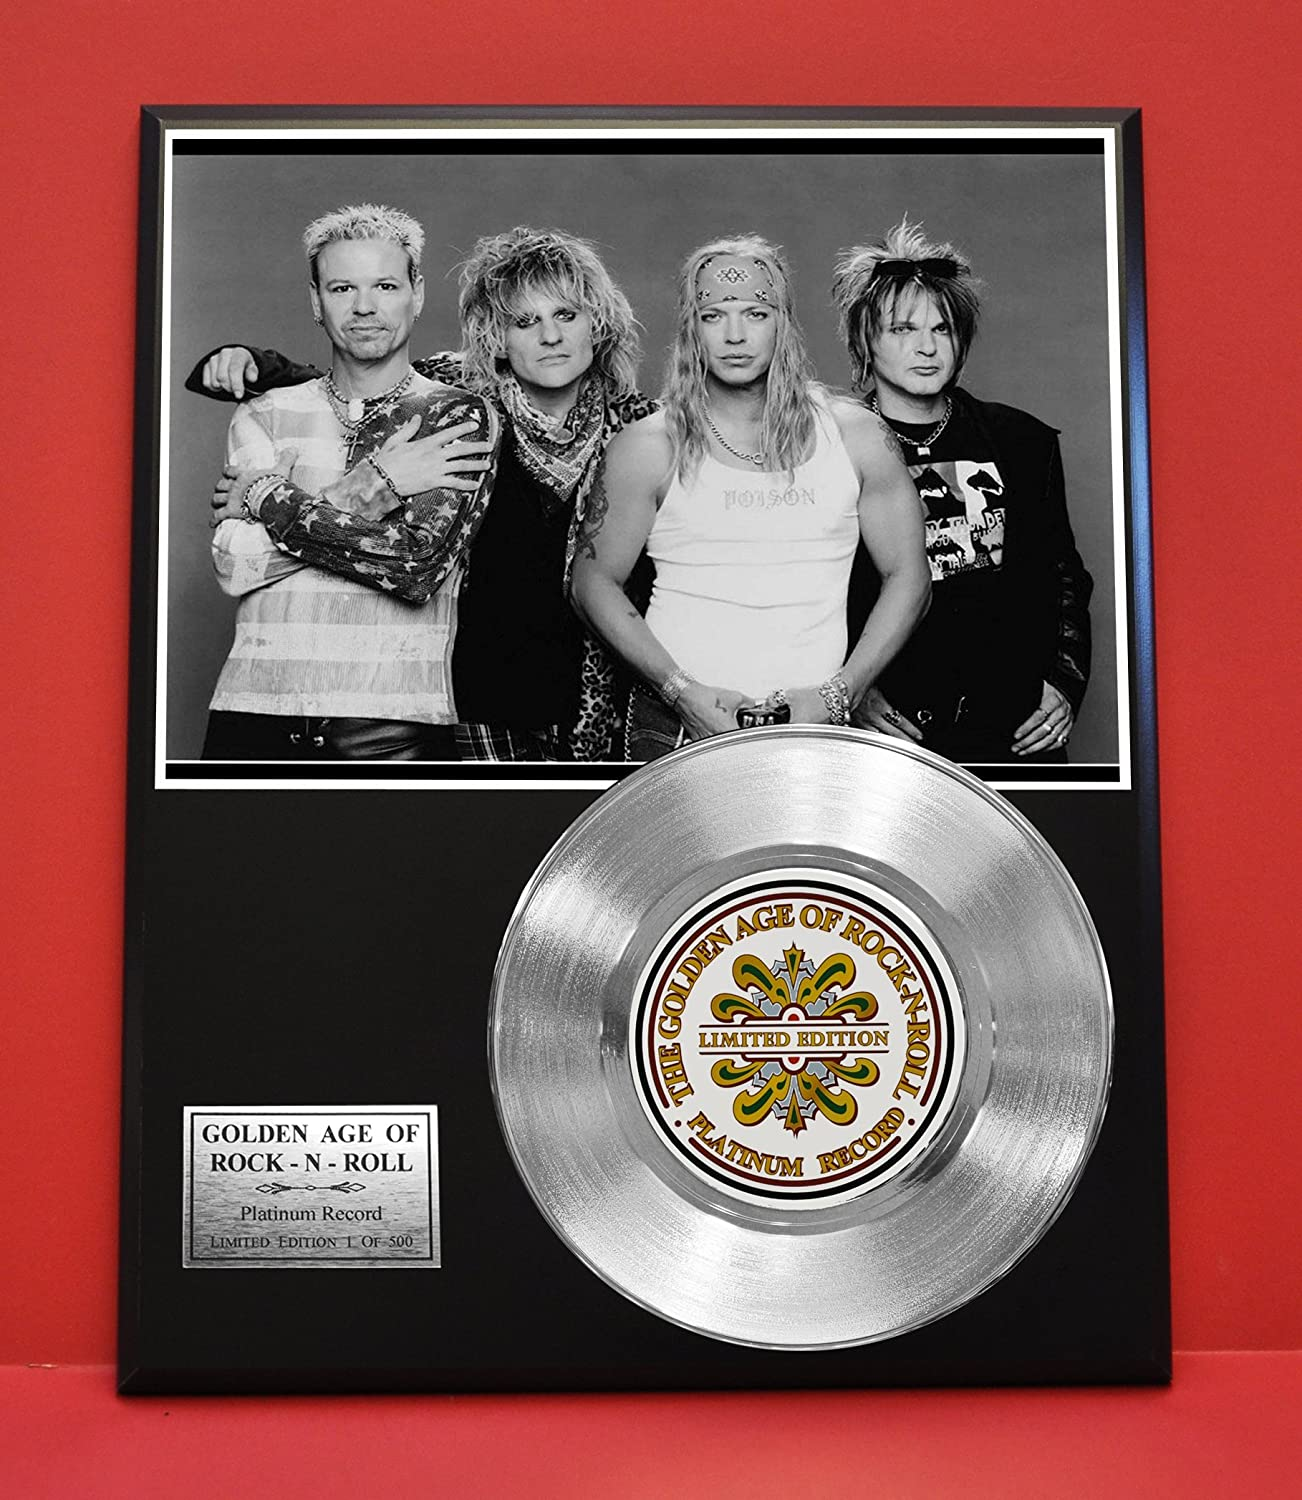 Poison LTD Edition Platinum Record Display - Award Quality Music Memorabilia Wall Art - Gold Record Outlet